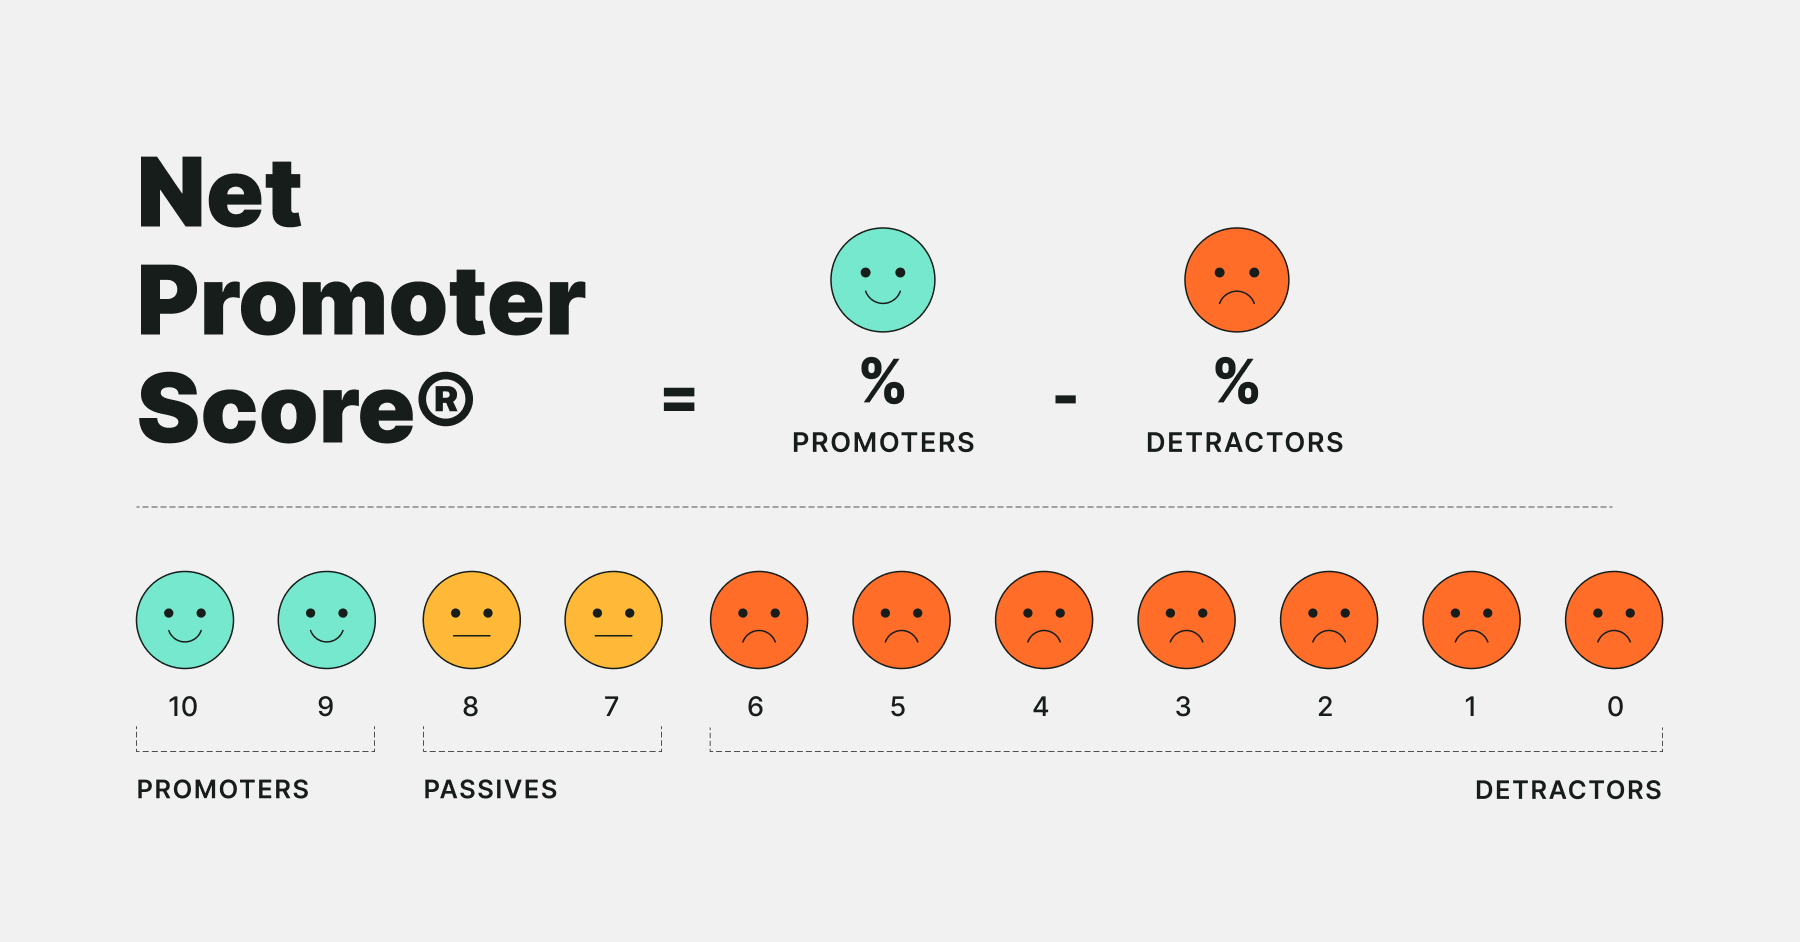 How to calculate NPS Net Promoter Score